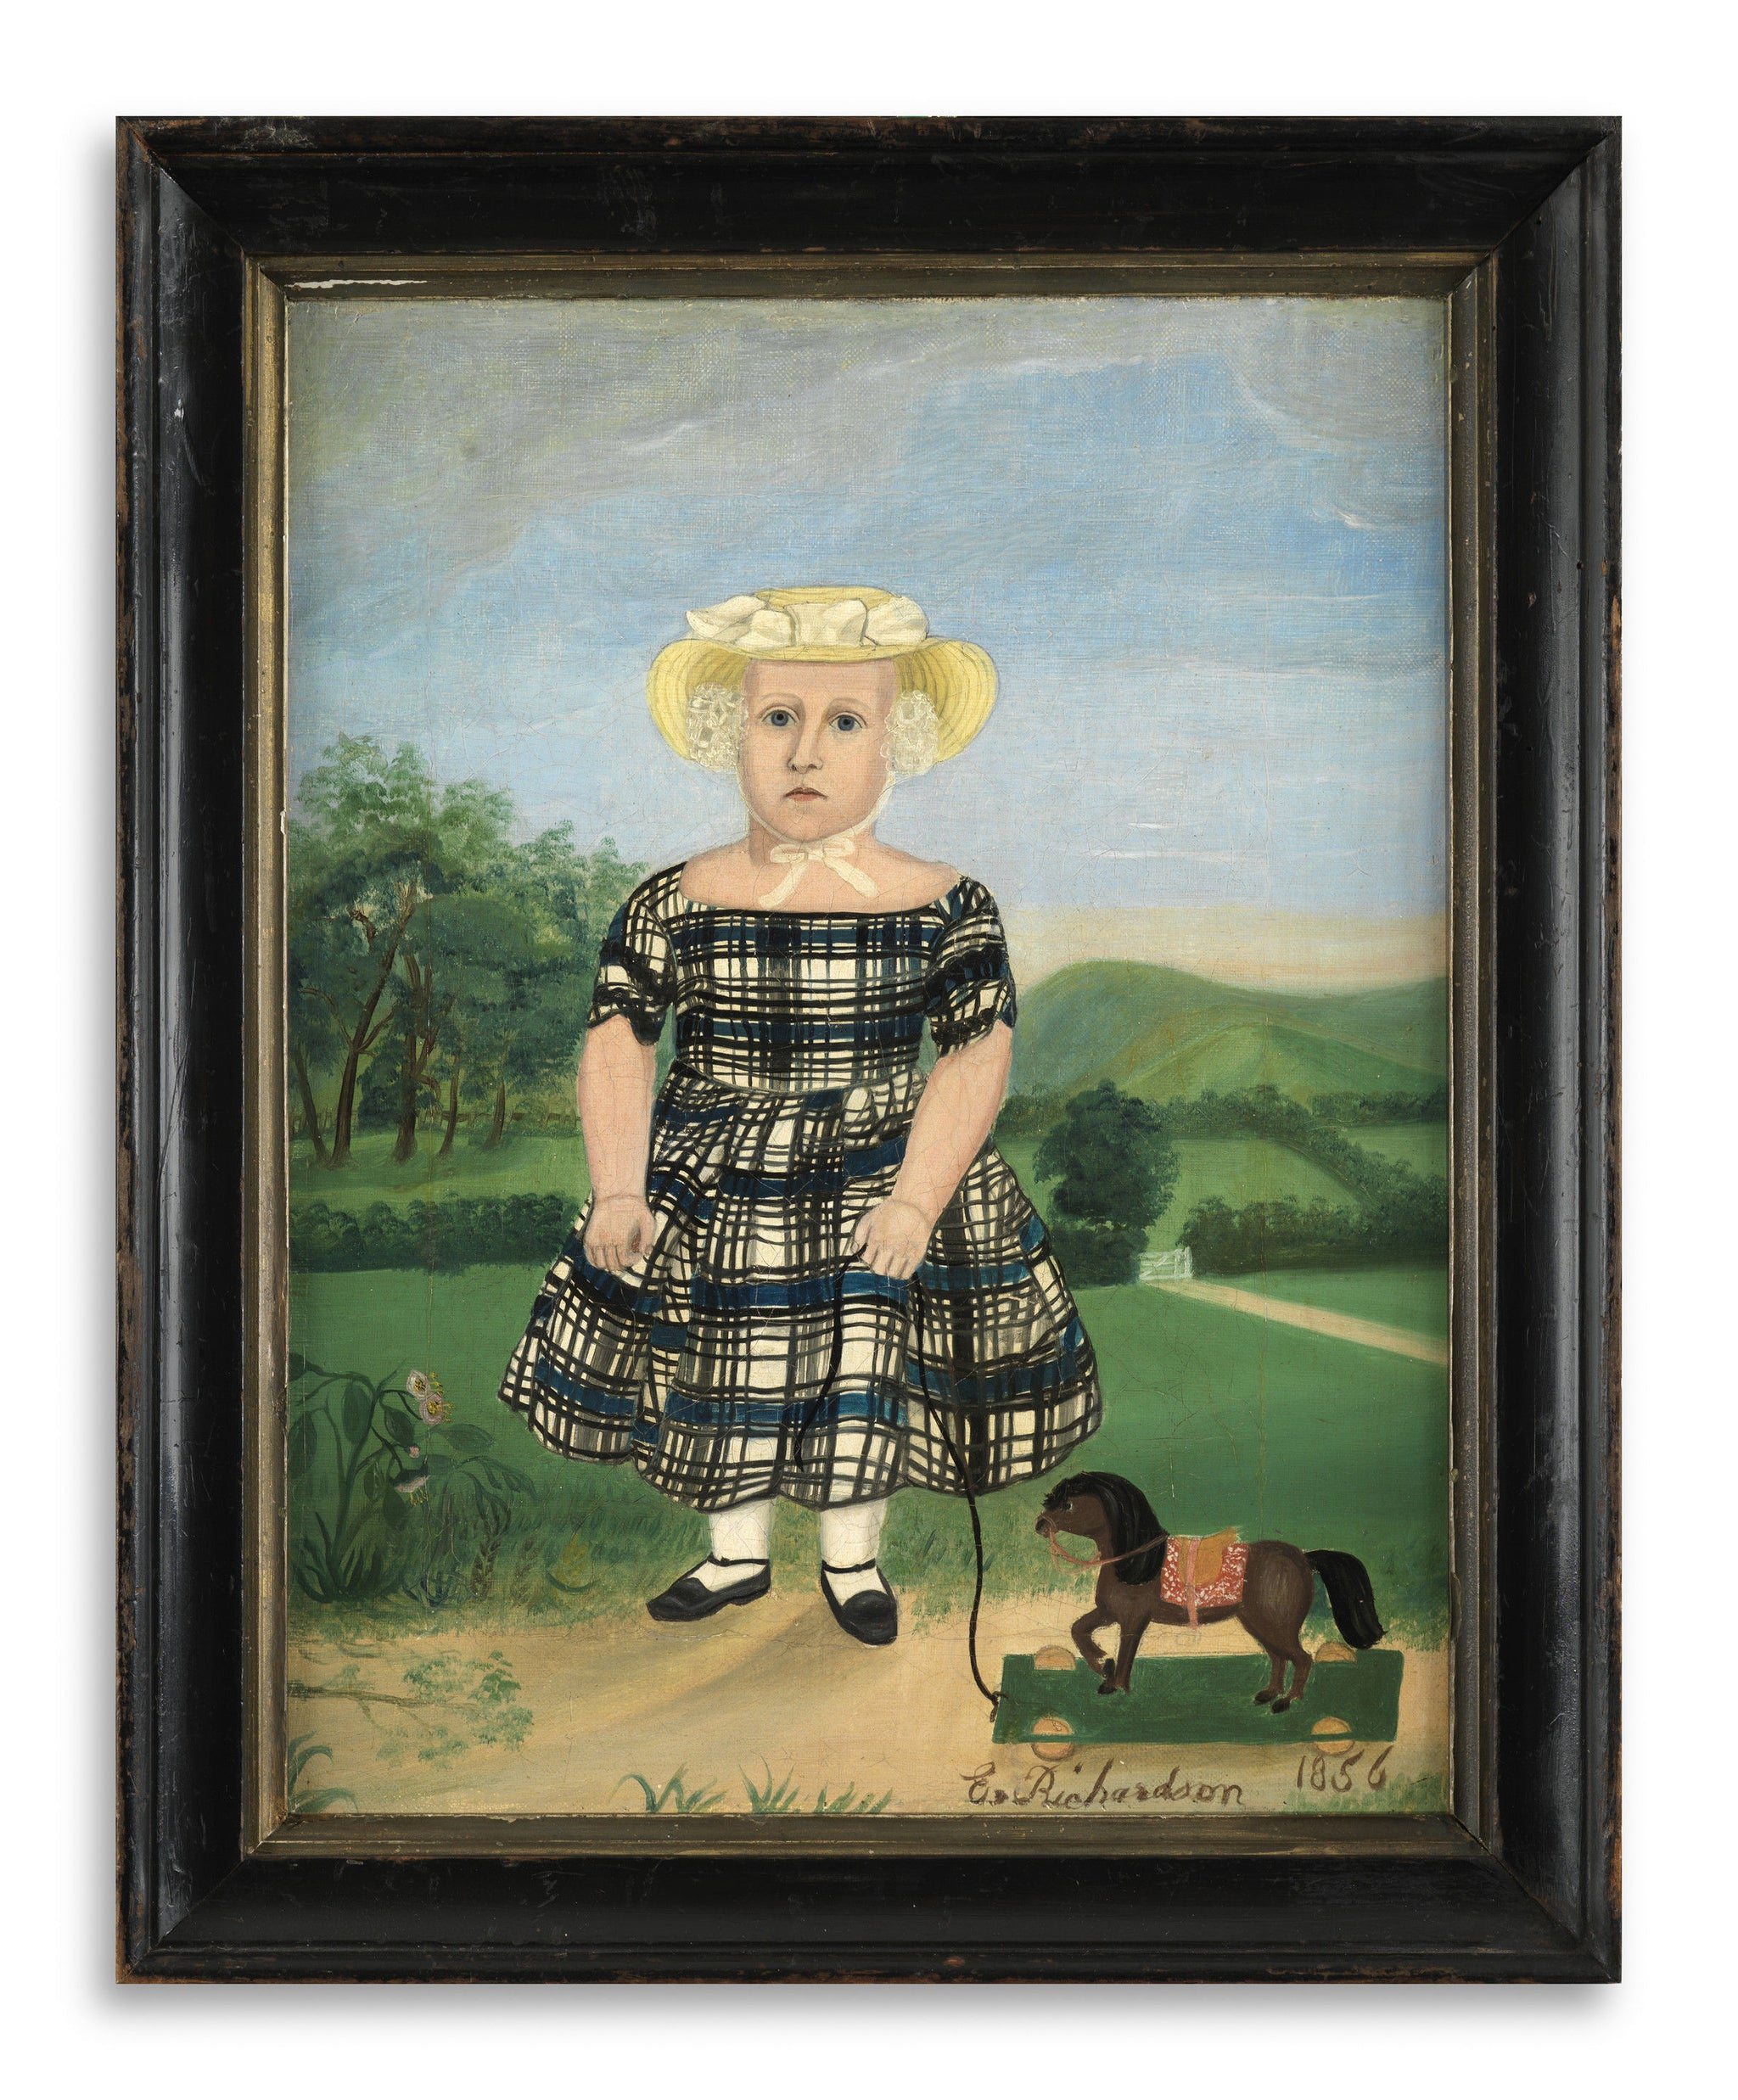 Fine Naive Portrait of a Child With a Horse Pull Toy